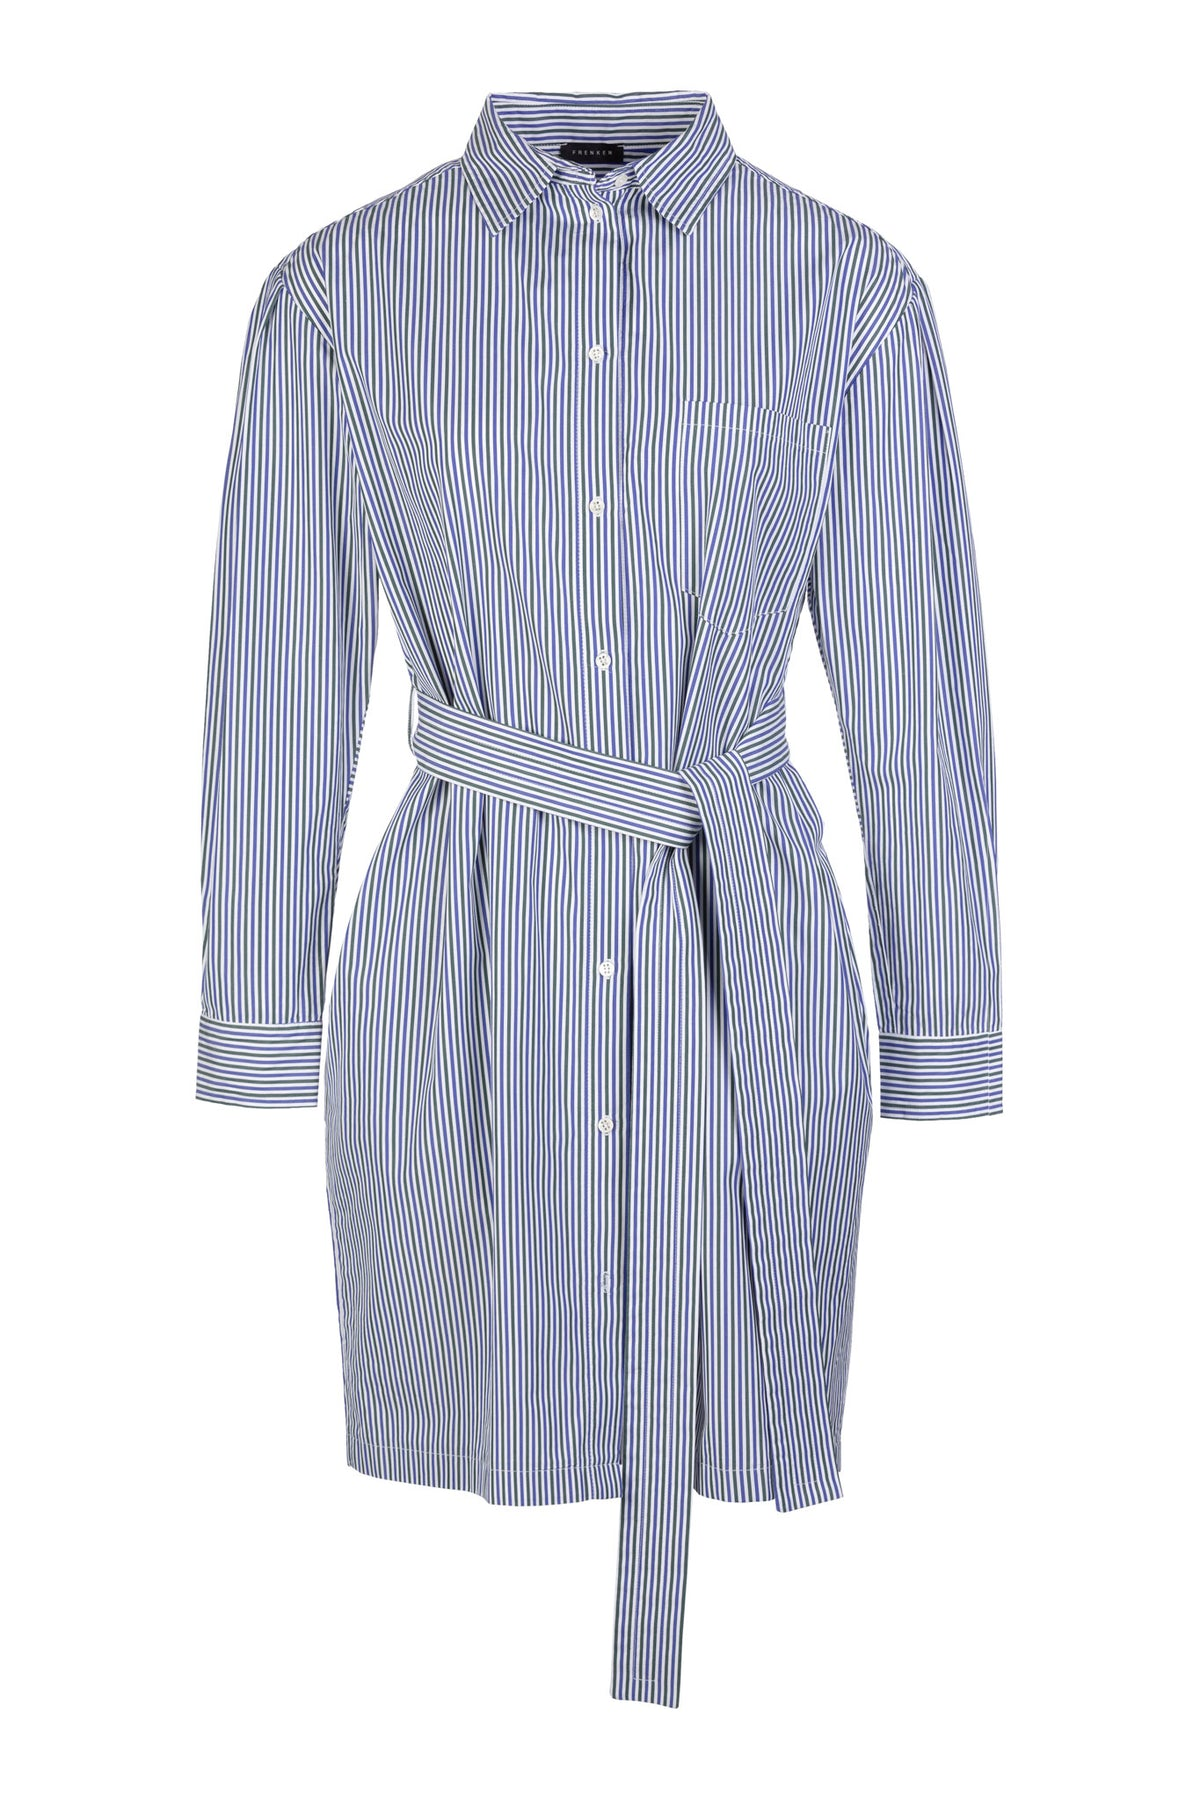 Double Pocket | Dress | Army White Navy Stripe